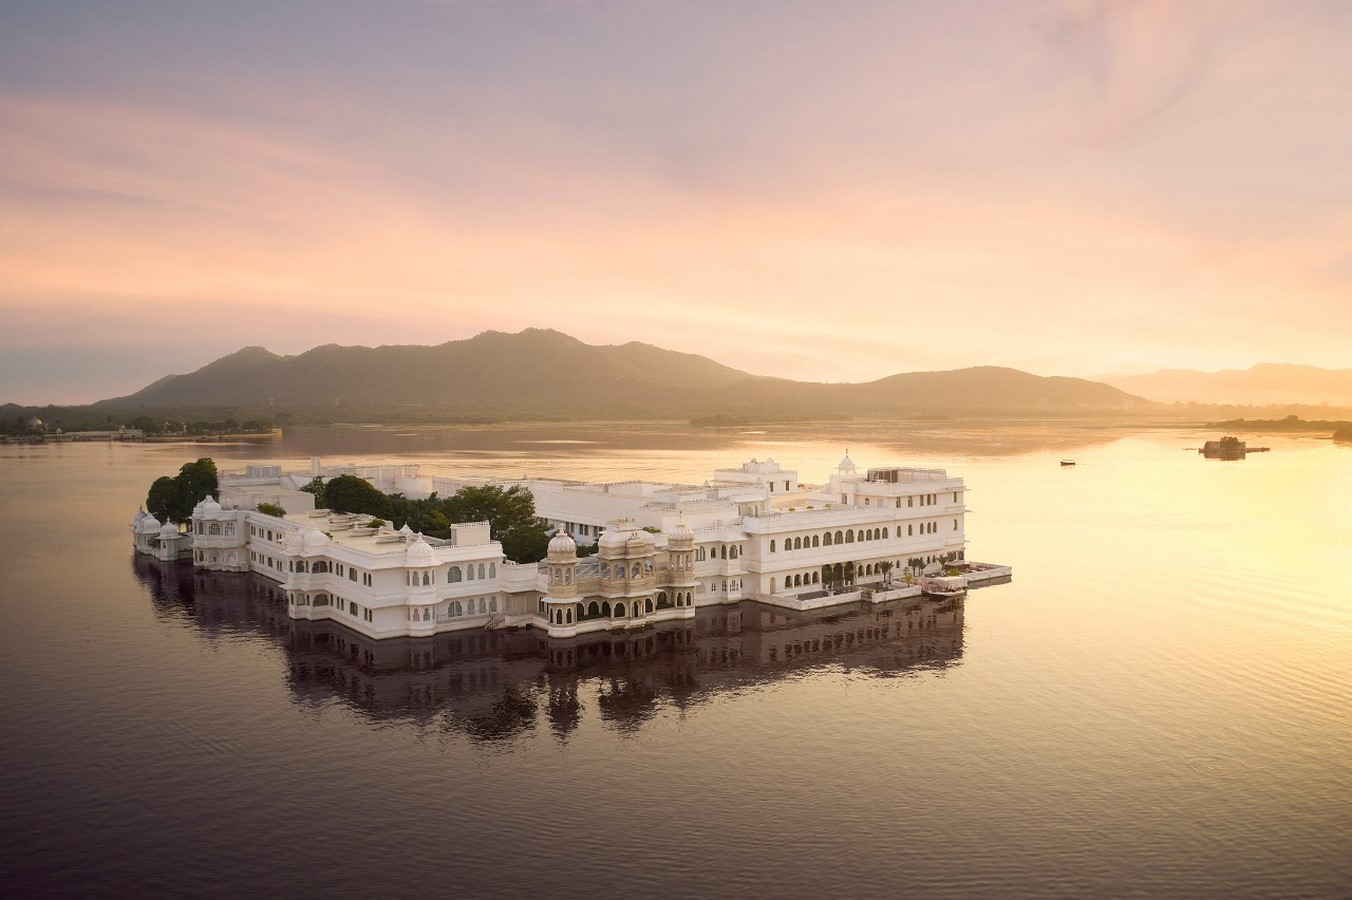 How water led to the evolution of architecture in ancient India - Sheet5